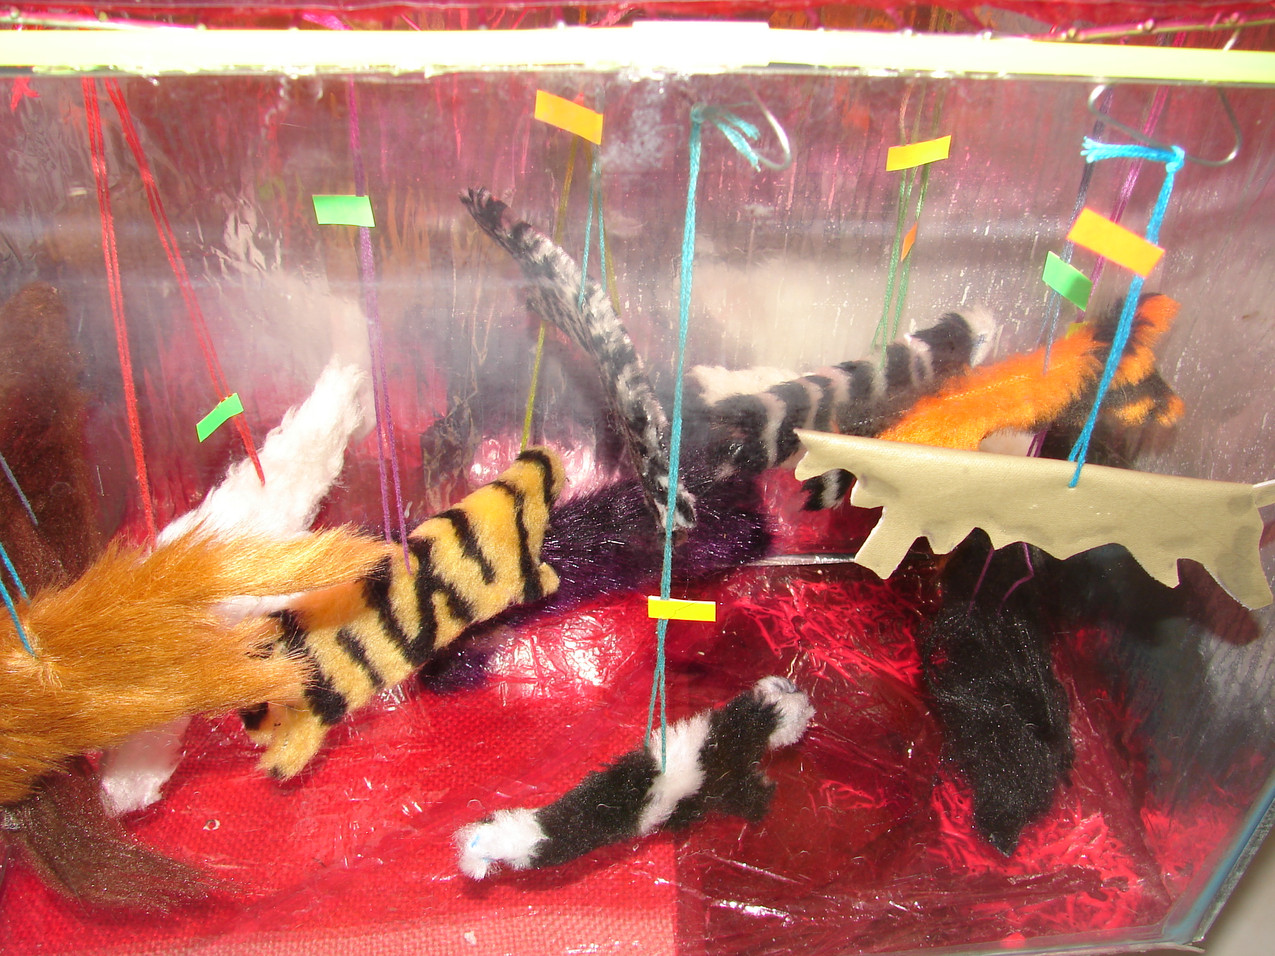 Aquarium - Shop Window7.jpg